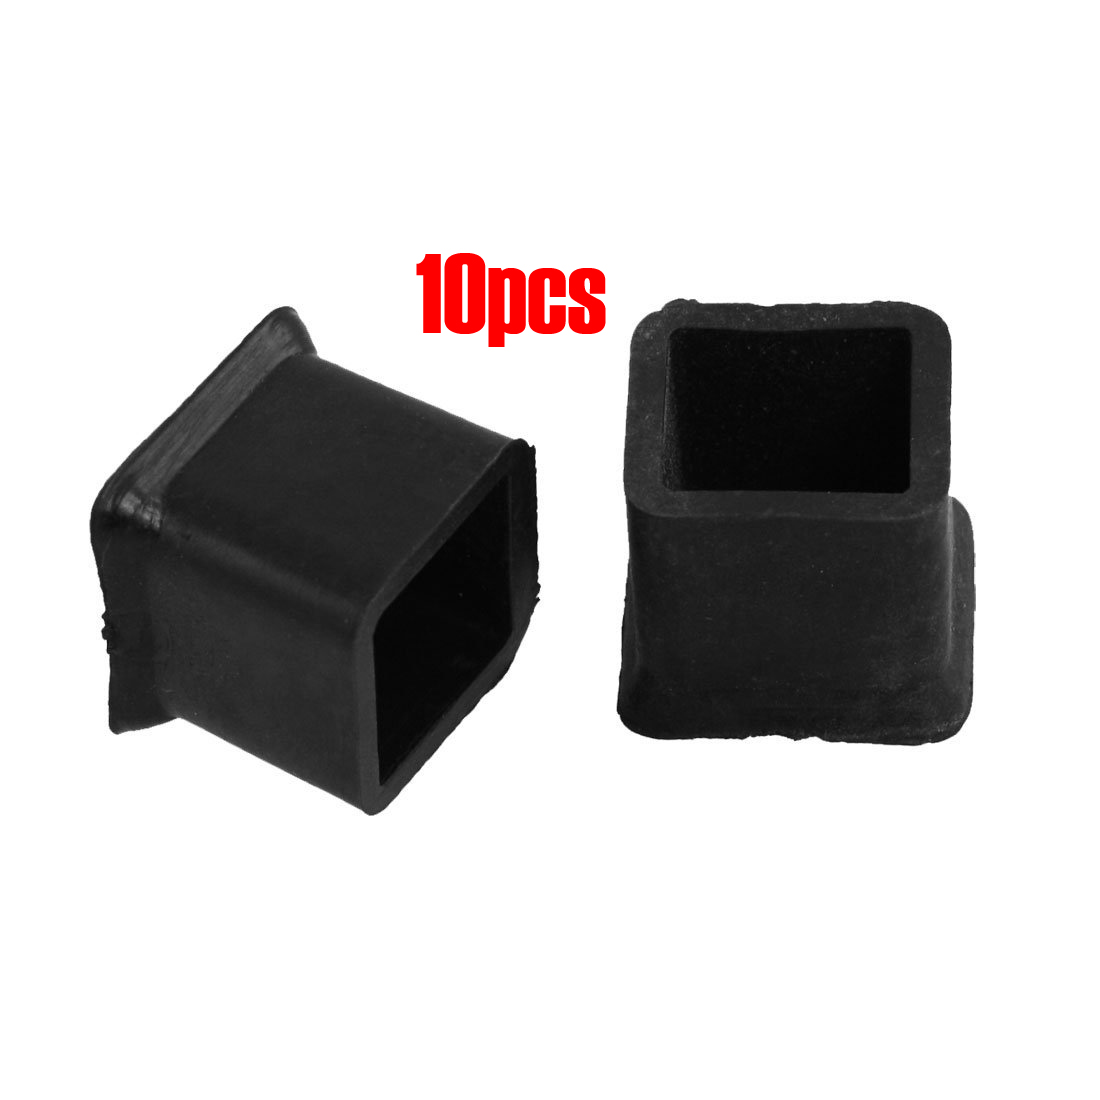 SDFC New 10Pcs Furniture Chair Table Leg Rubber Foot Covers Protectors 20mm x 20mm szs hot new 10pcs furniture chair table leg rubber foot covers protectors 20mm x 20mm free shipping